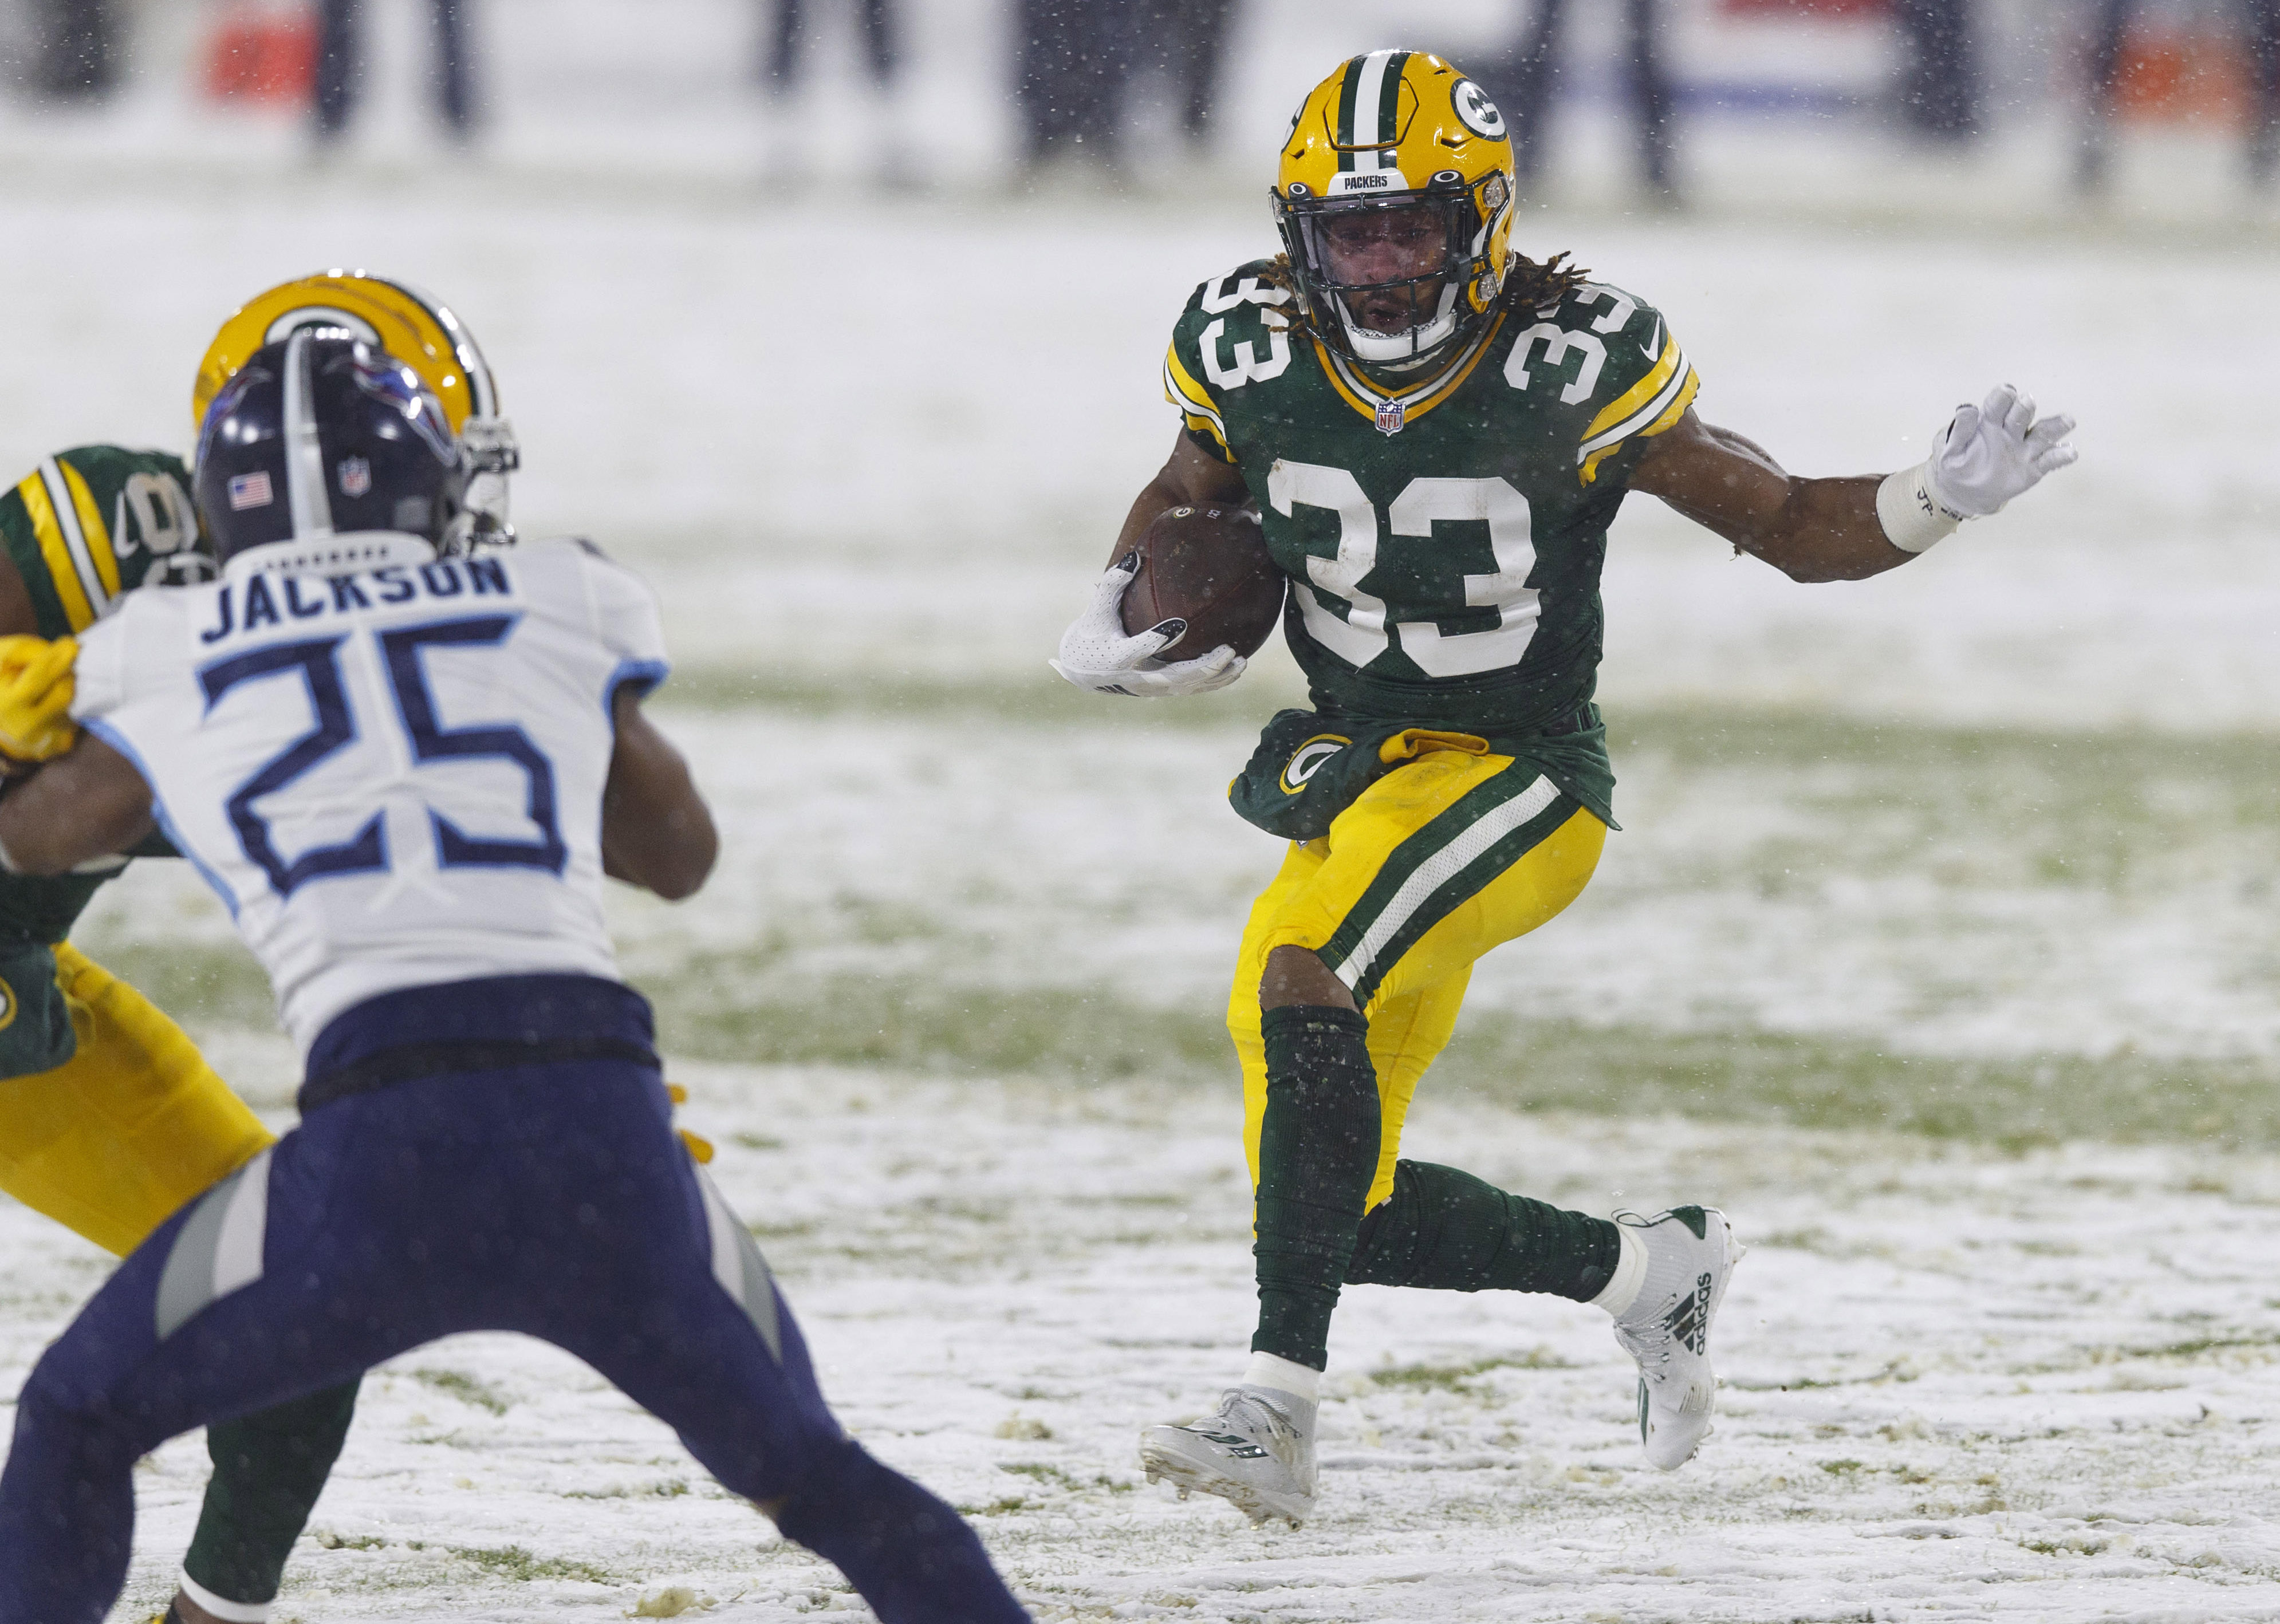 Five Things We Learned From the Packers Signing RB Aaron Jones